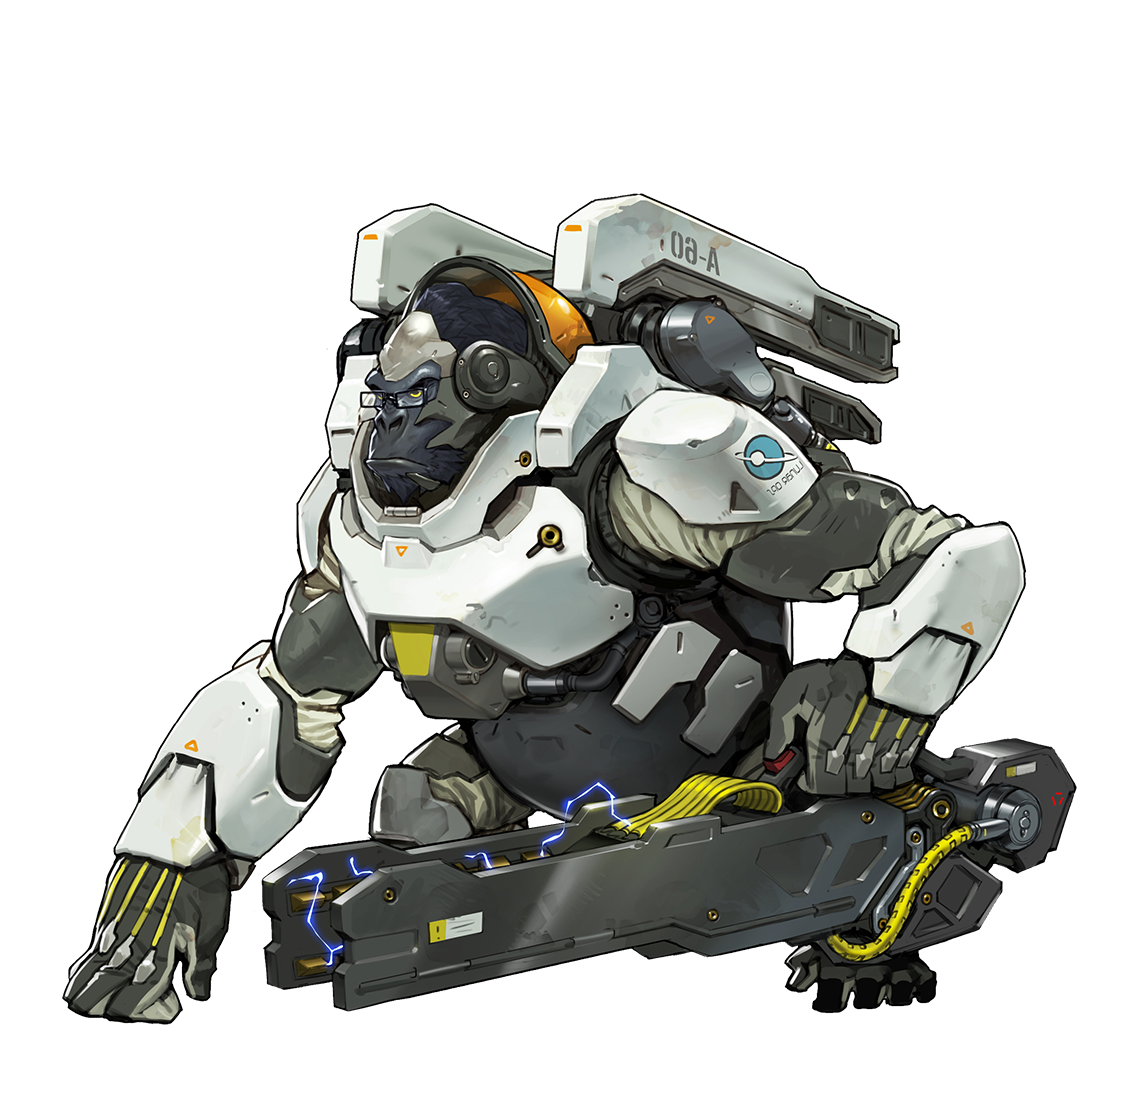 Winston transparent background. Overwatch tempo storm